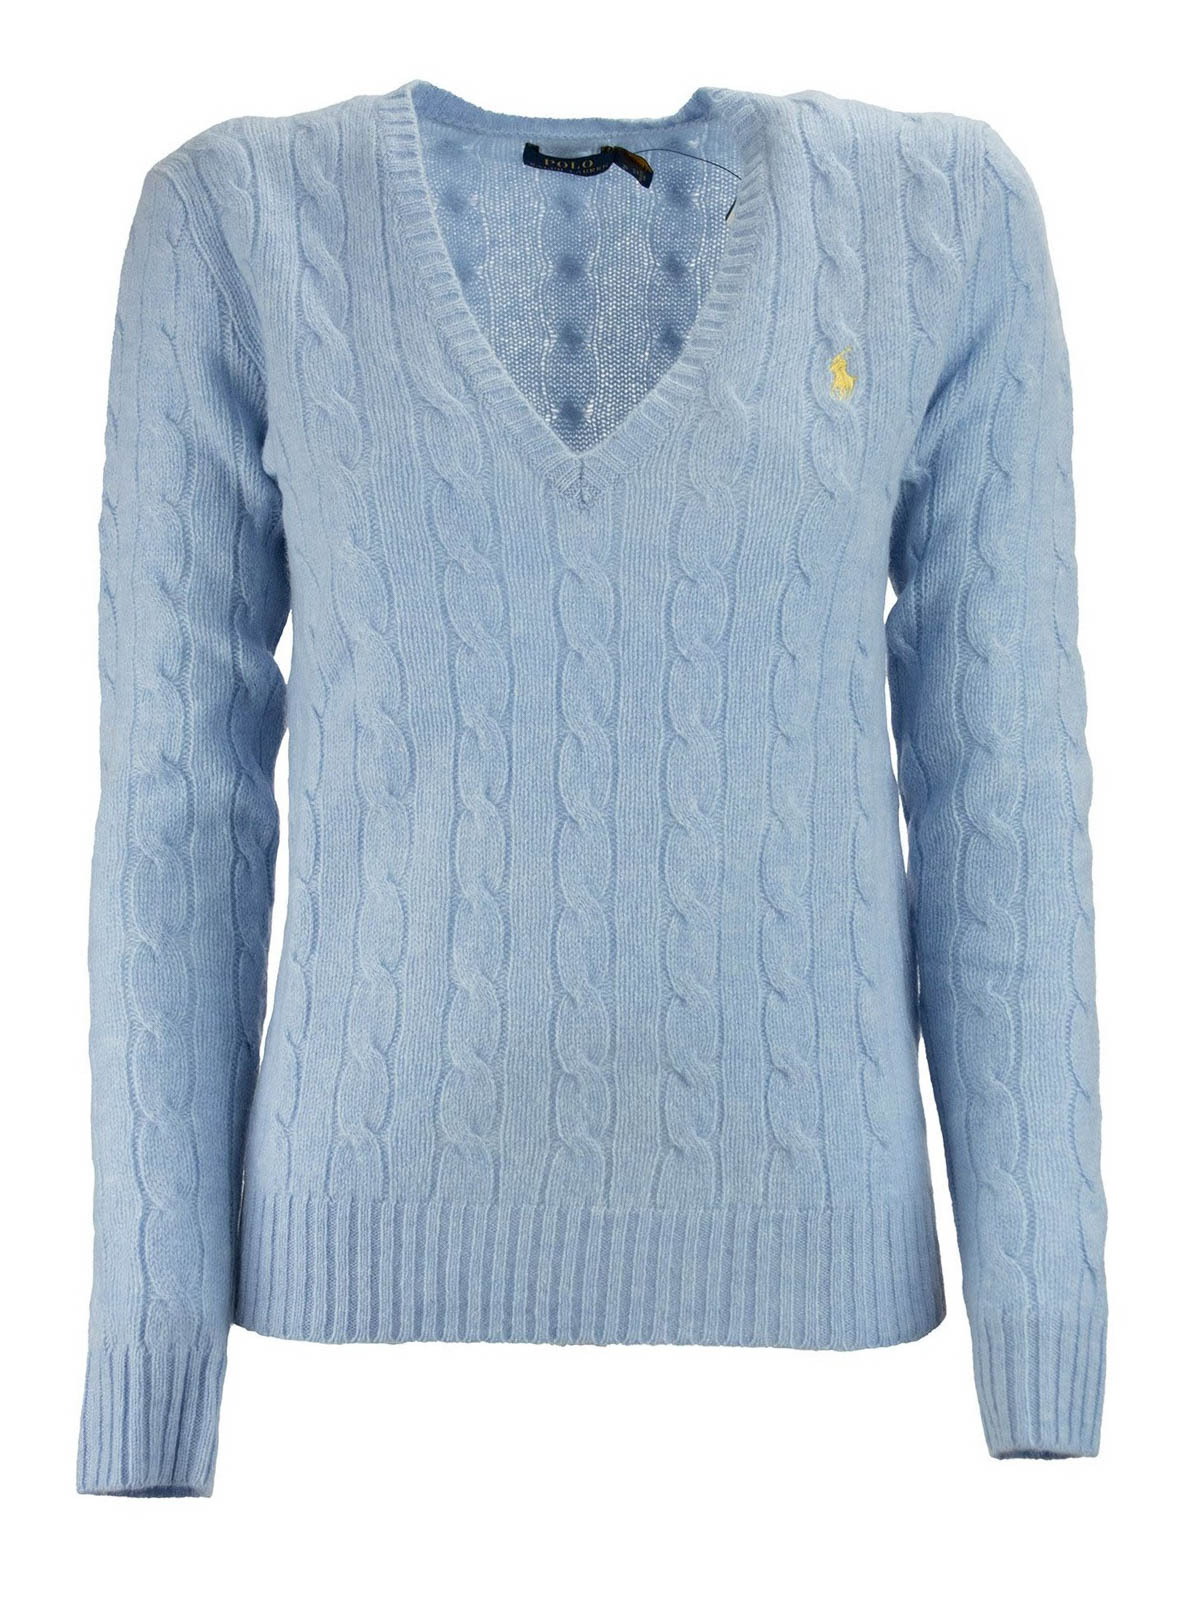 Ralph Lauren LOGO EMBROIDERY V-NECK SWEATER